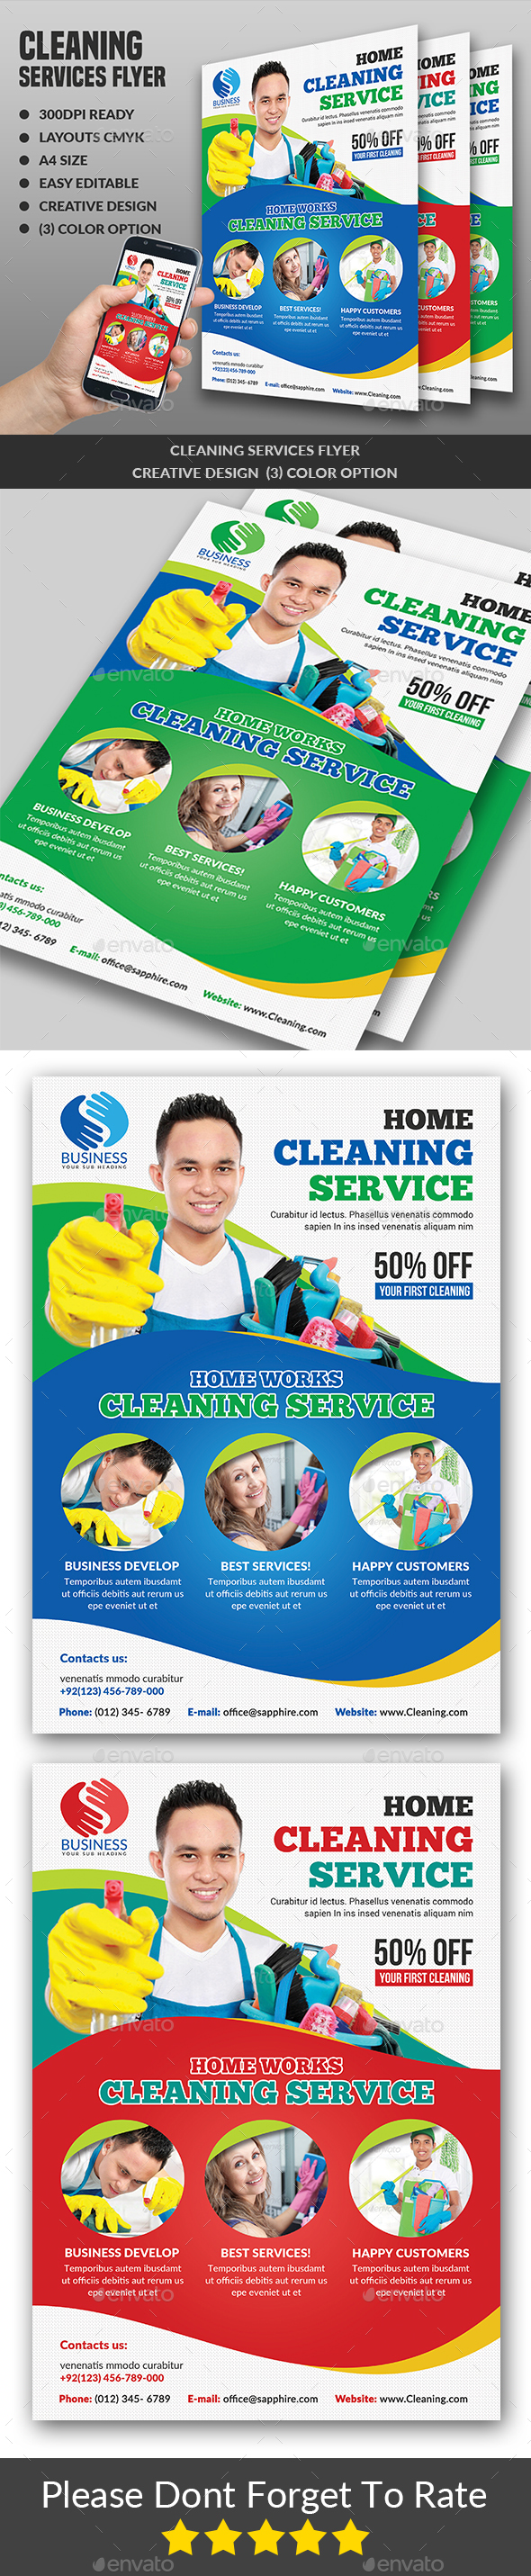 House Cleaning Specialist Flyer - Corporate Flyers